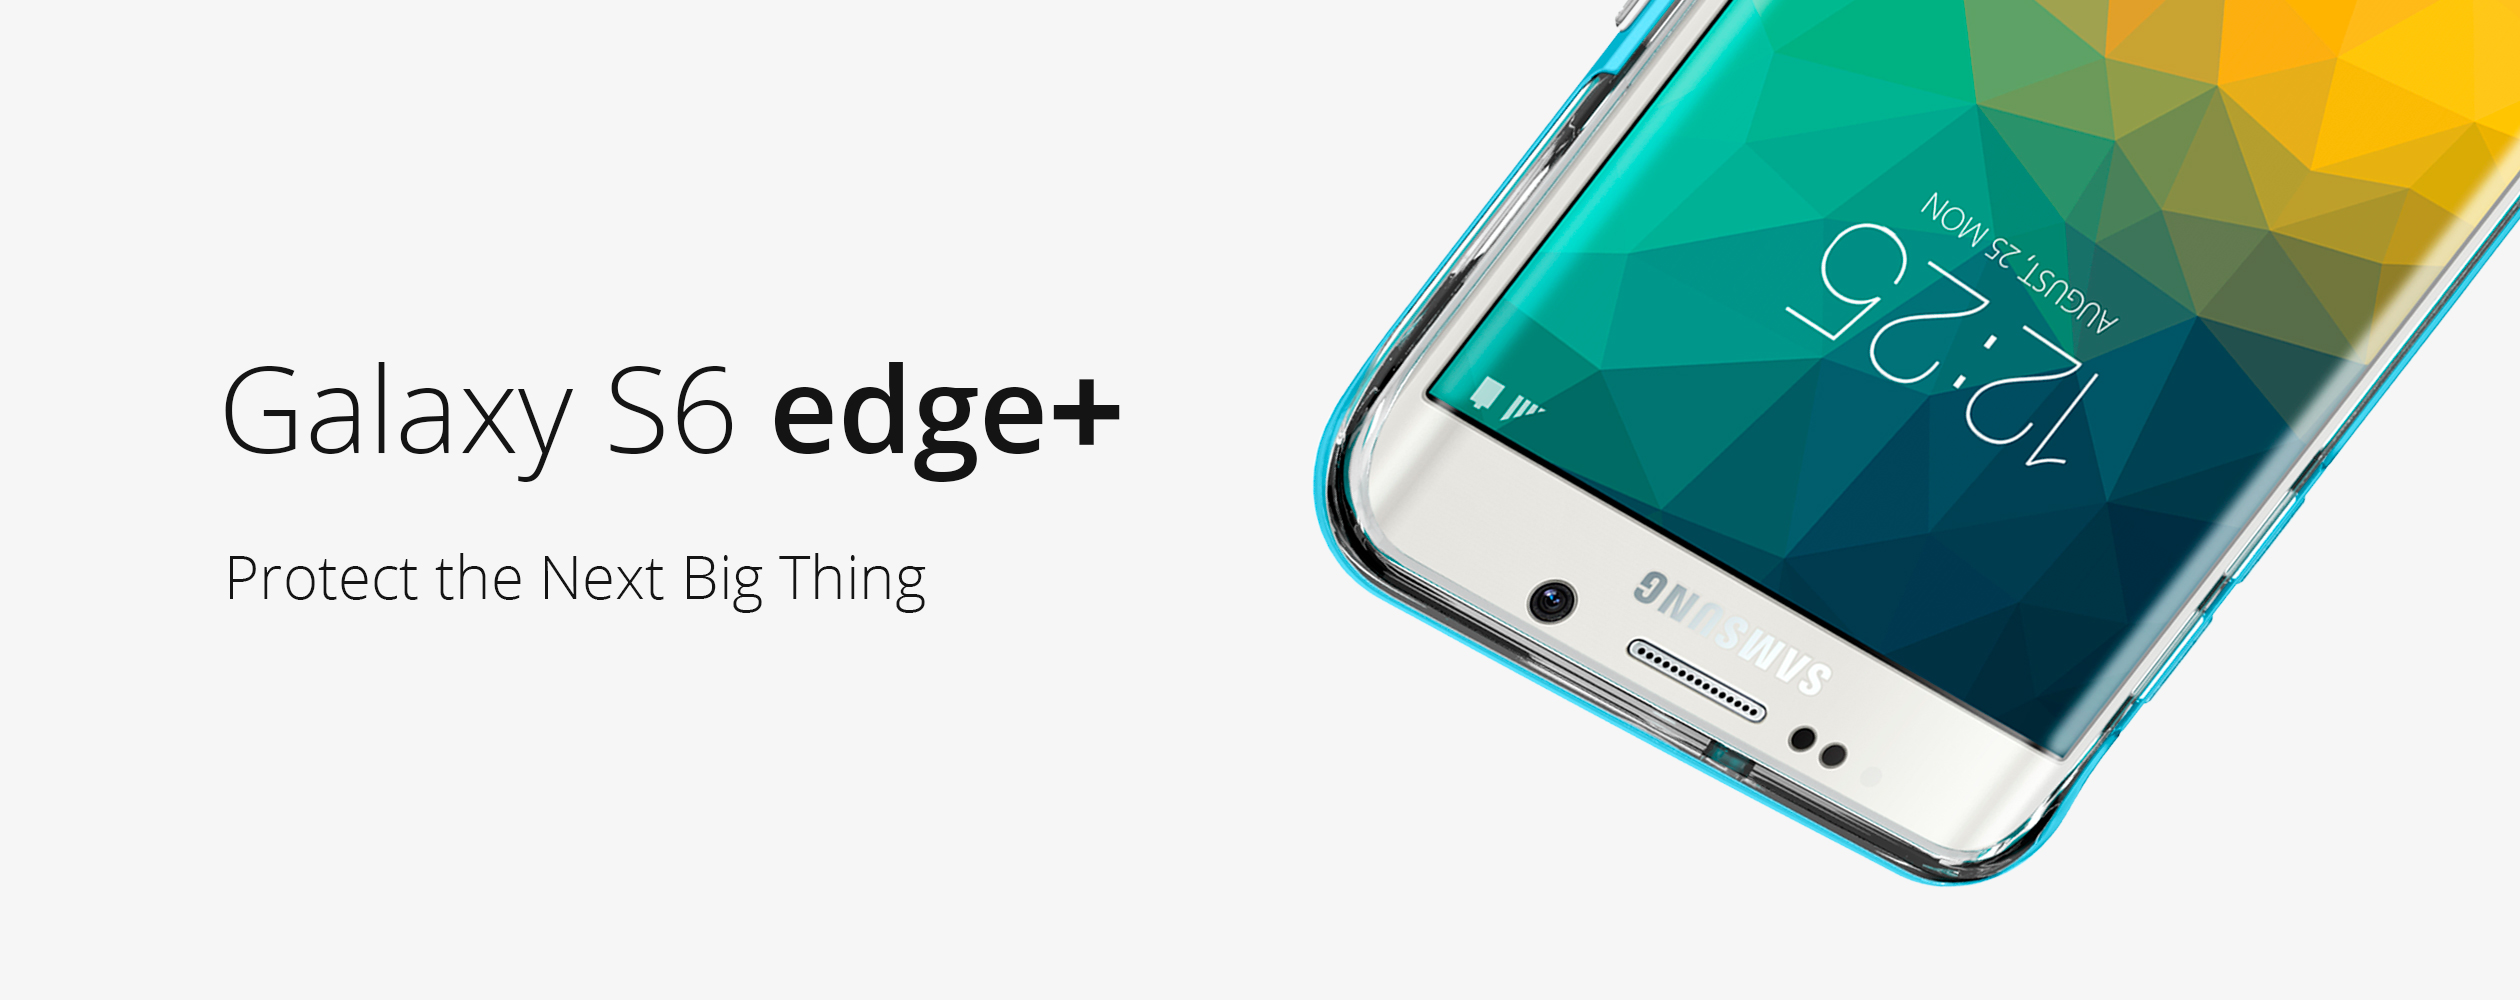 Images Of The Samsung Galaxy S6 Edge And Note 5 Revealed Spigen Thin Fit Hardcase Tipis Original By Case Maker Sammobile